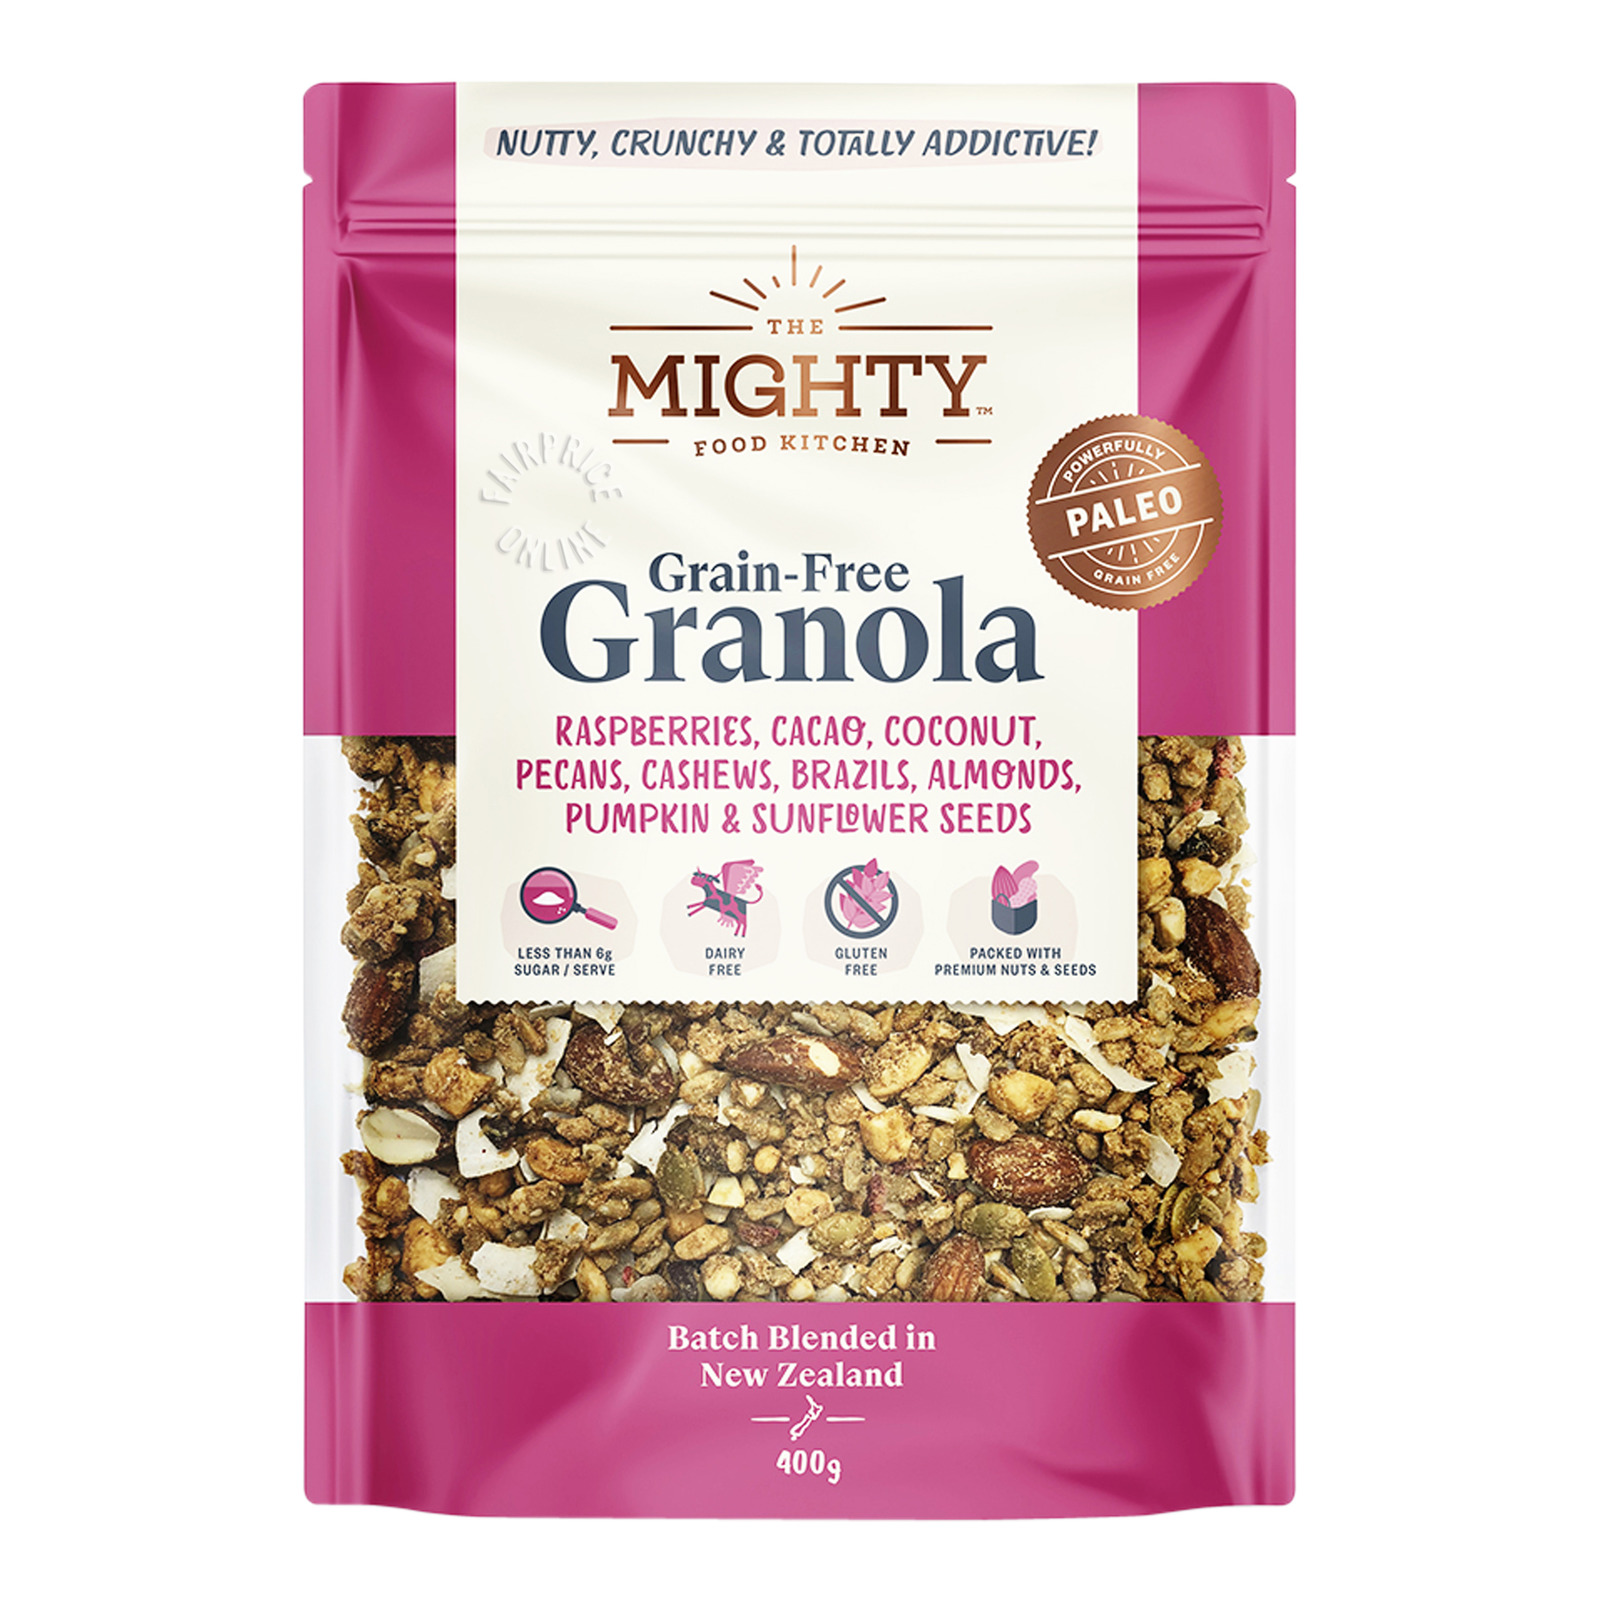 The Mighty Food Kitchen Grain-Free Granola - Fruits, Nuts &Seeds